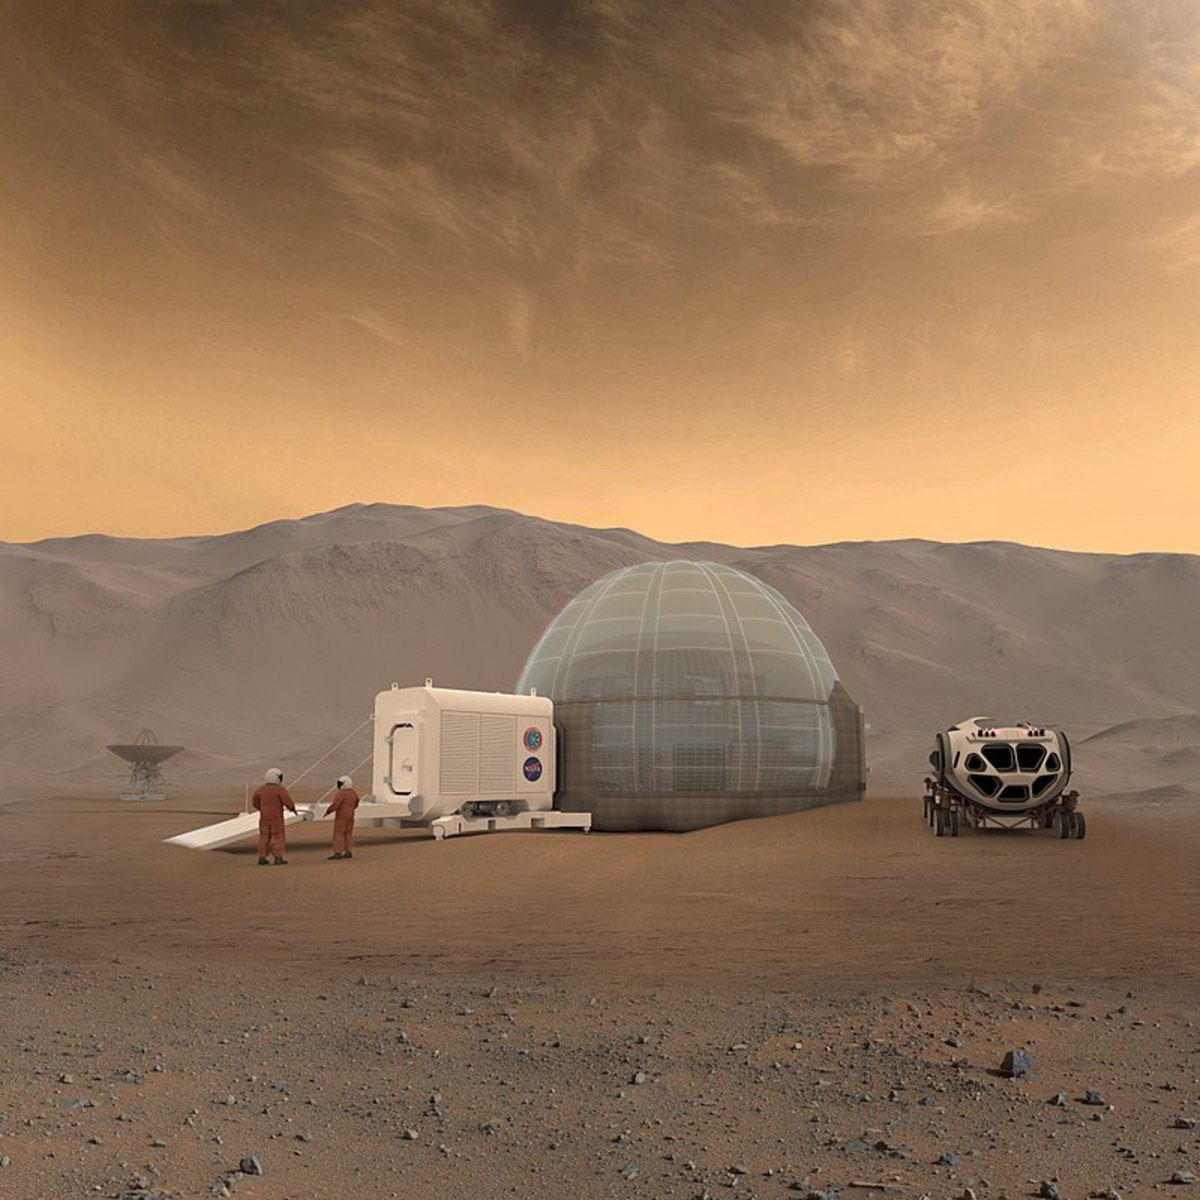 Artists rendering of what a future Mars mission might look like